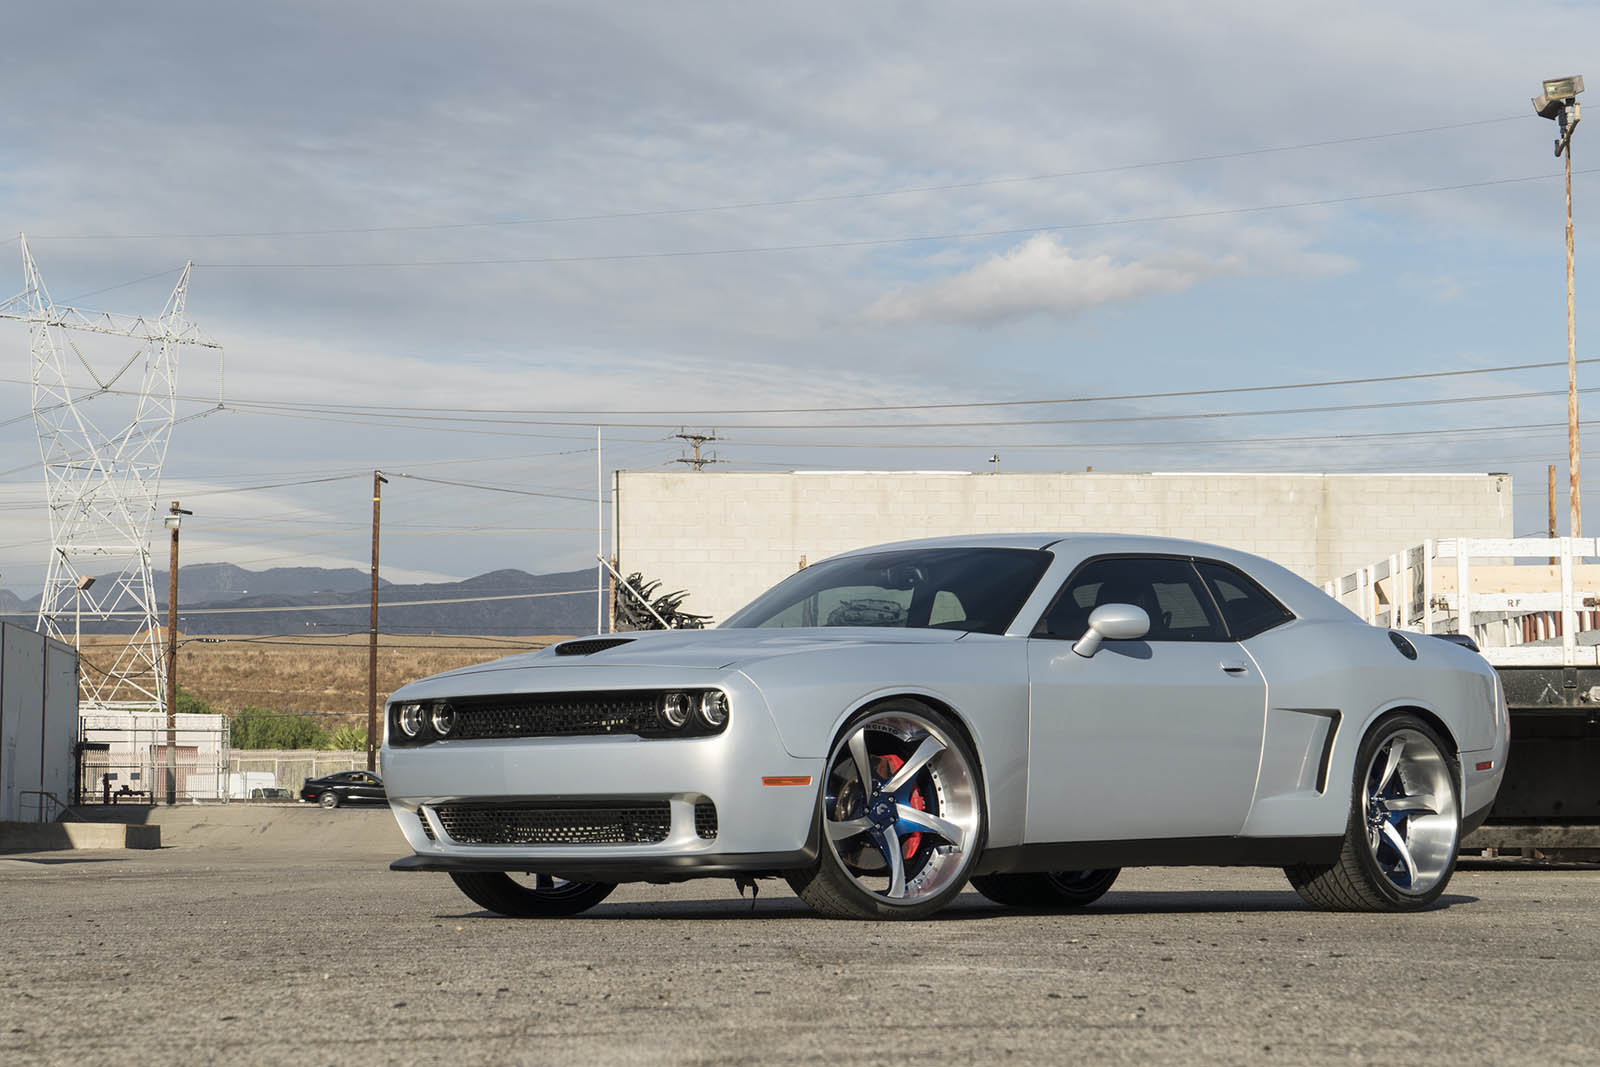 Pirelli P Zero >> Widebody Kit And Huge Alloys Make The Challenger SRT Look Even More Macho | Carscoops